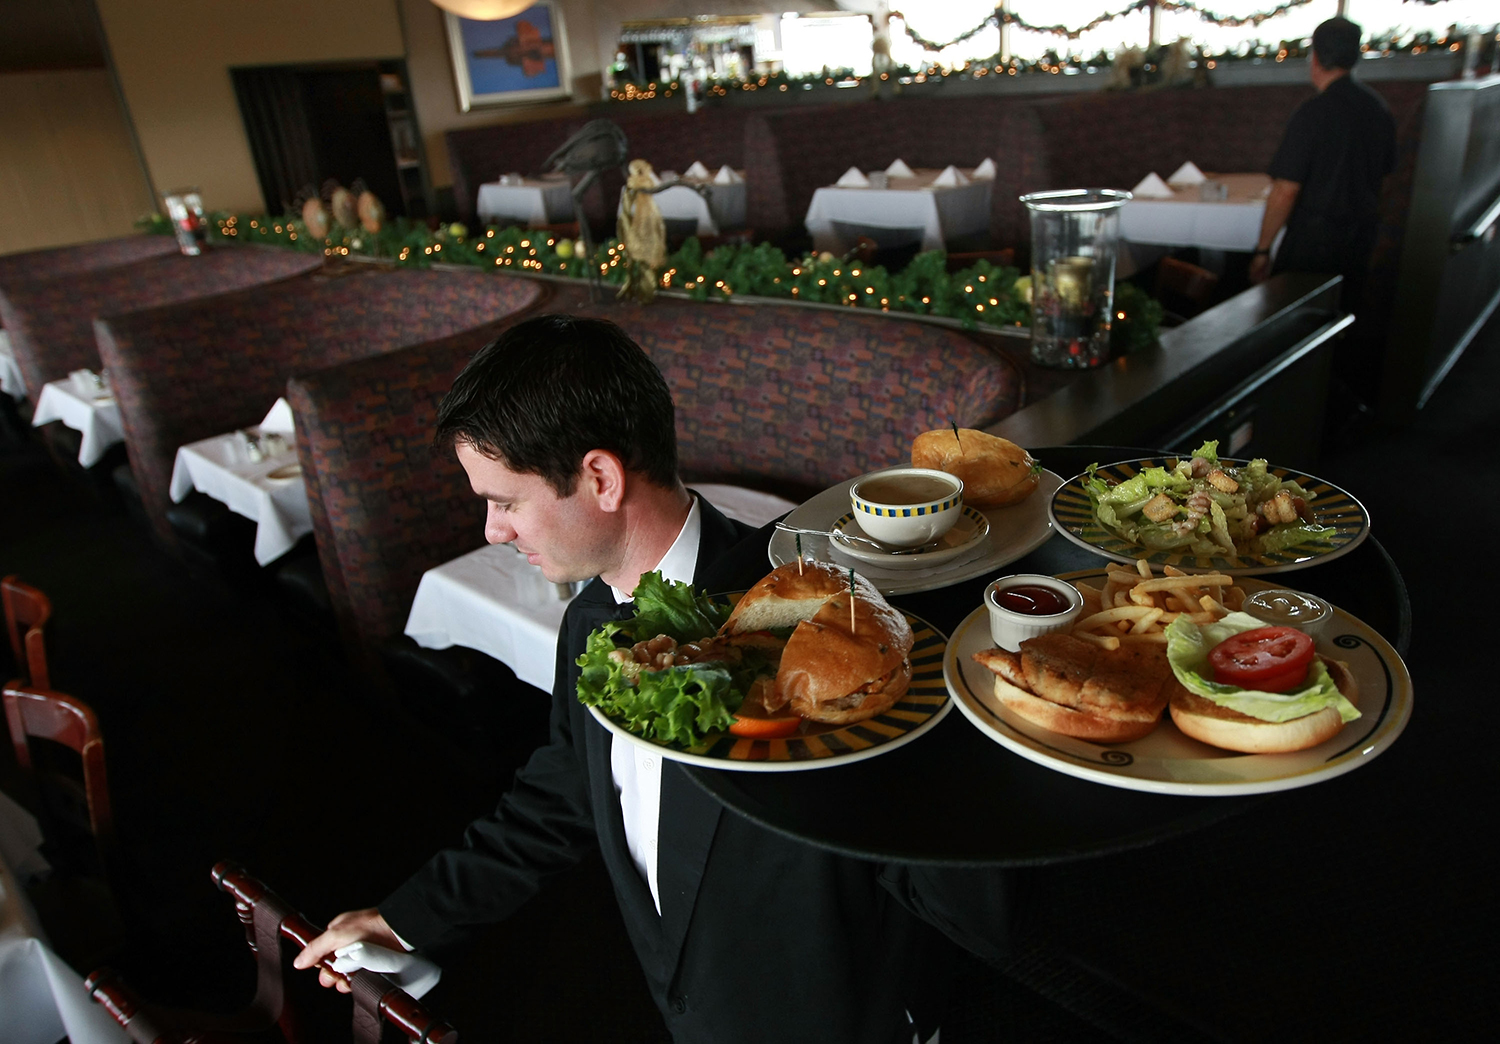 Waiter Bringing Food to Table